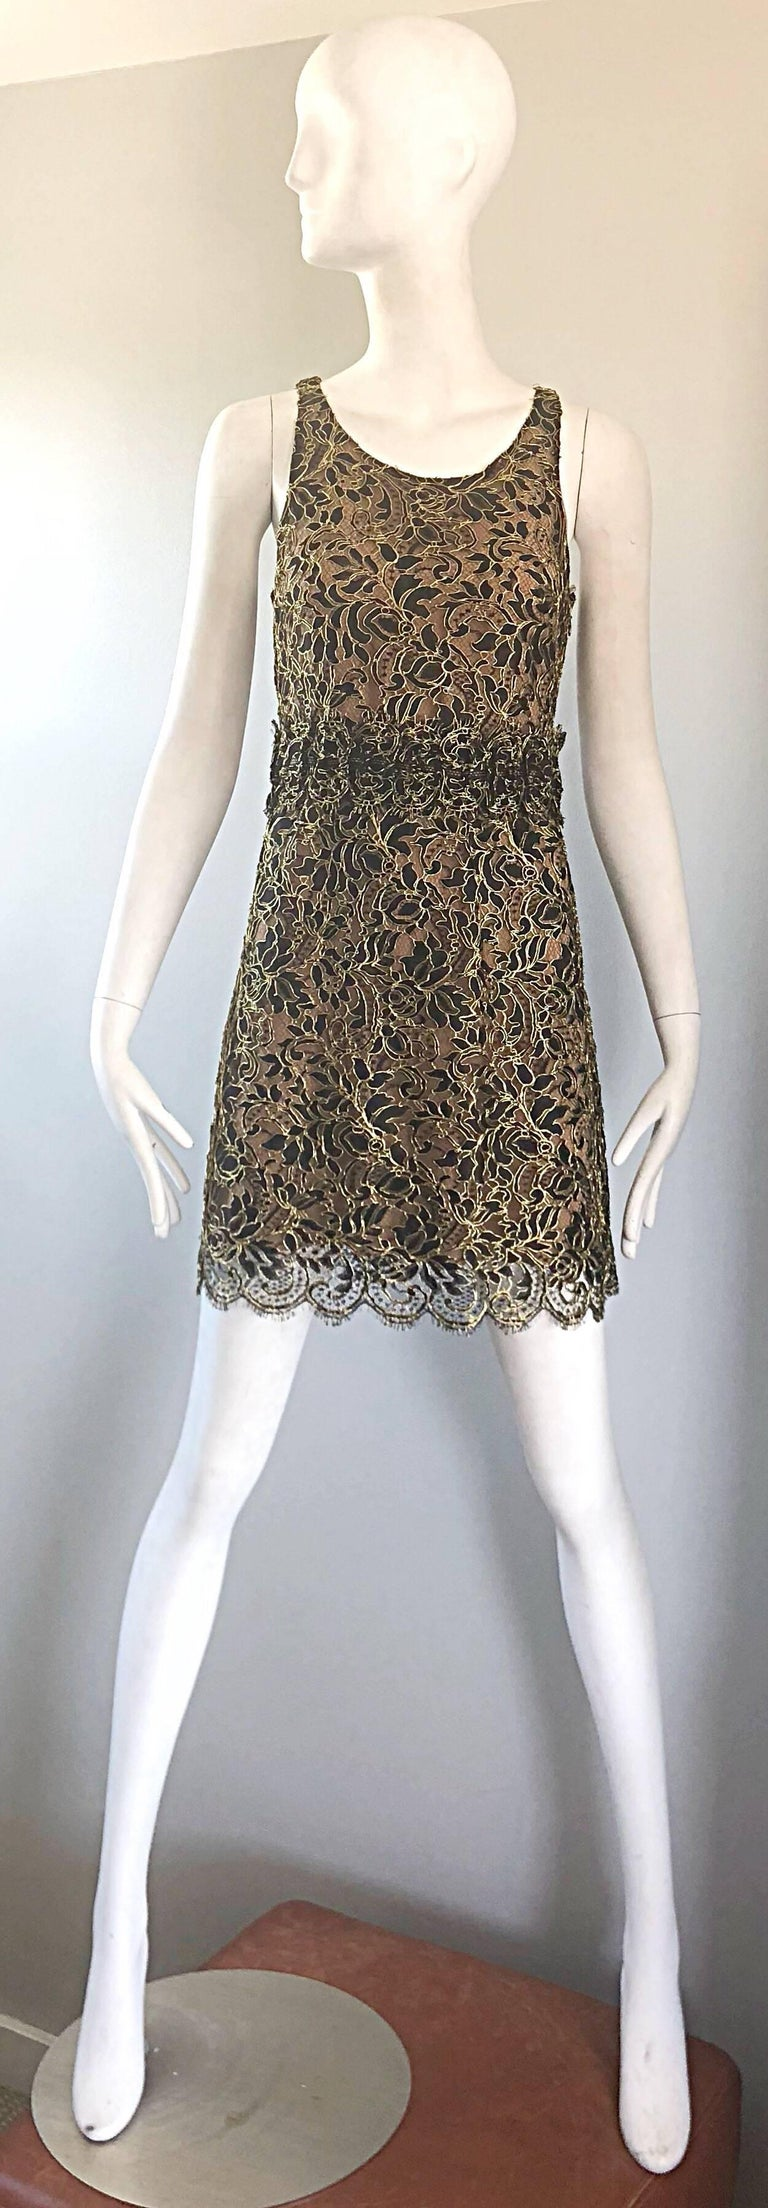 Balenciaga by Nicolas Ghesquiere Black + Gold + Nude Silk Chiffon Lace Dress For Sale 10